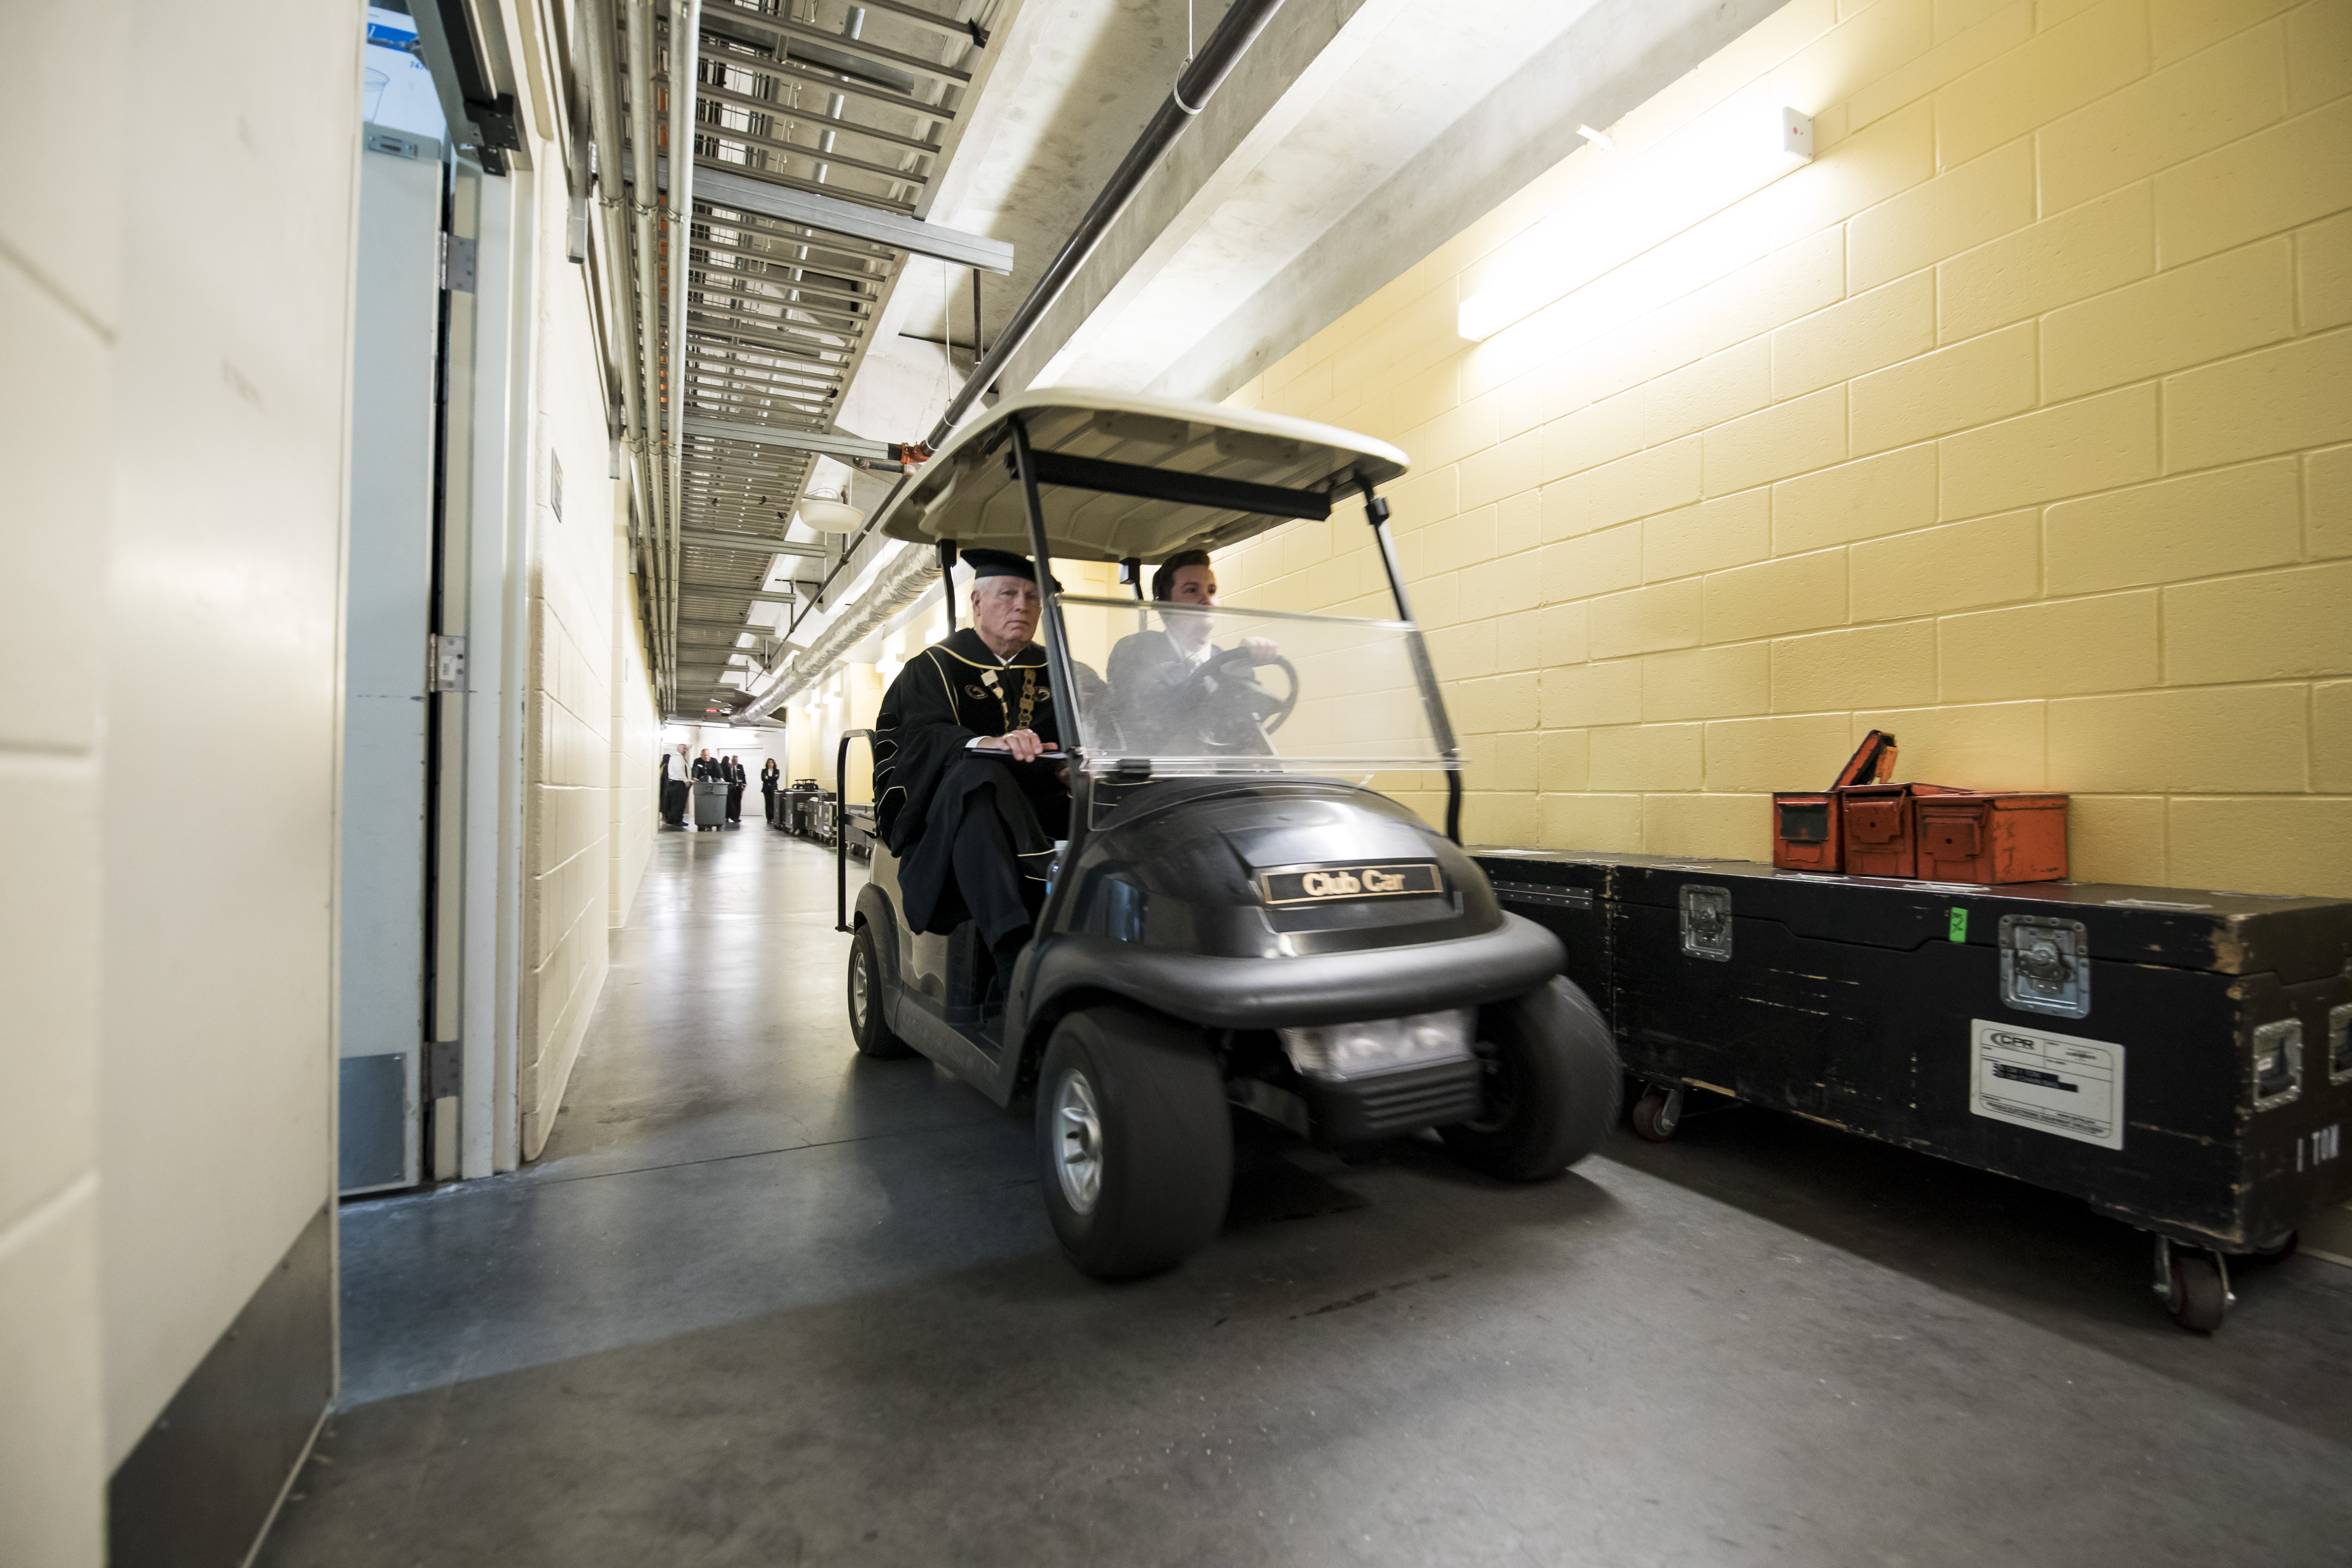 A man drives a golf cart through a hallway in CFE Arena as John C. Hitt wears a cap and gown and sits in the passenger seat .